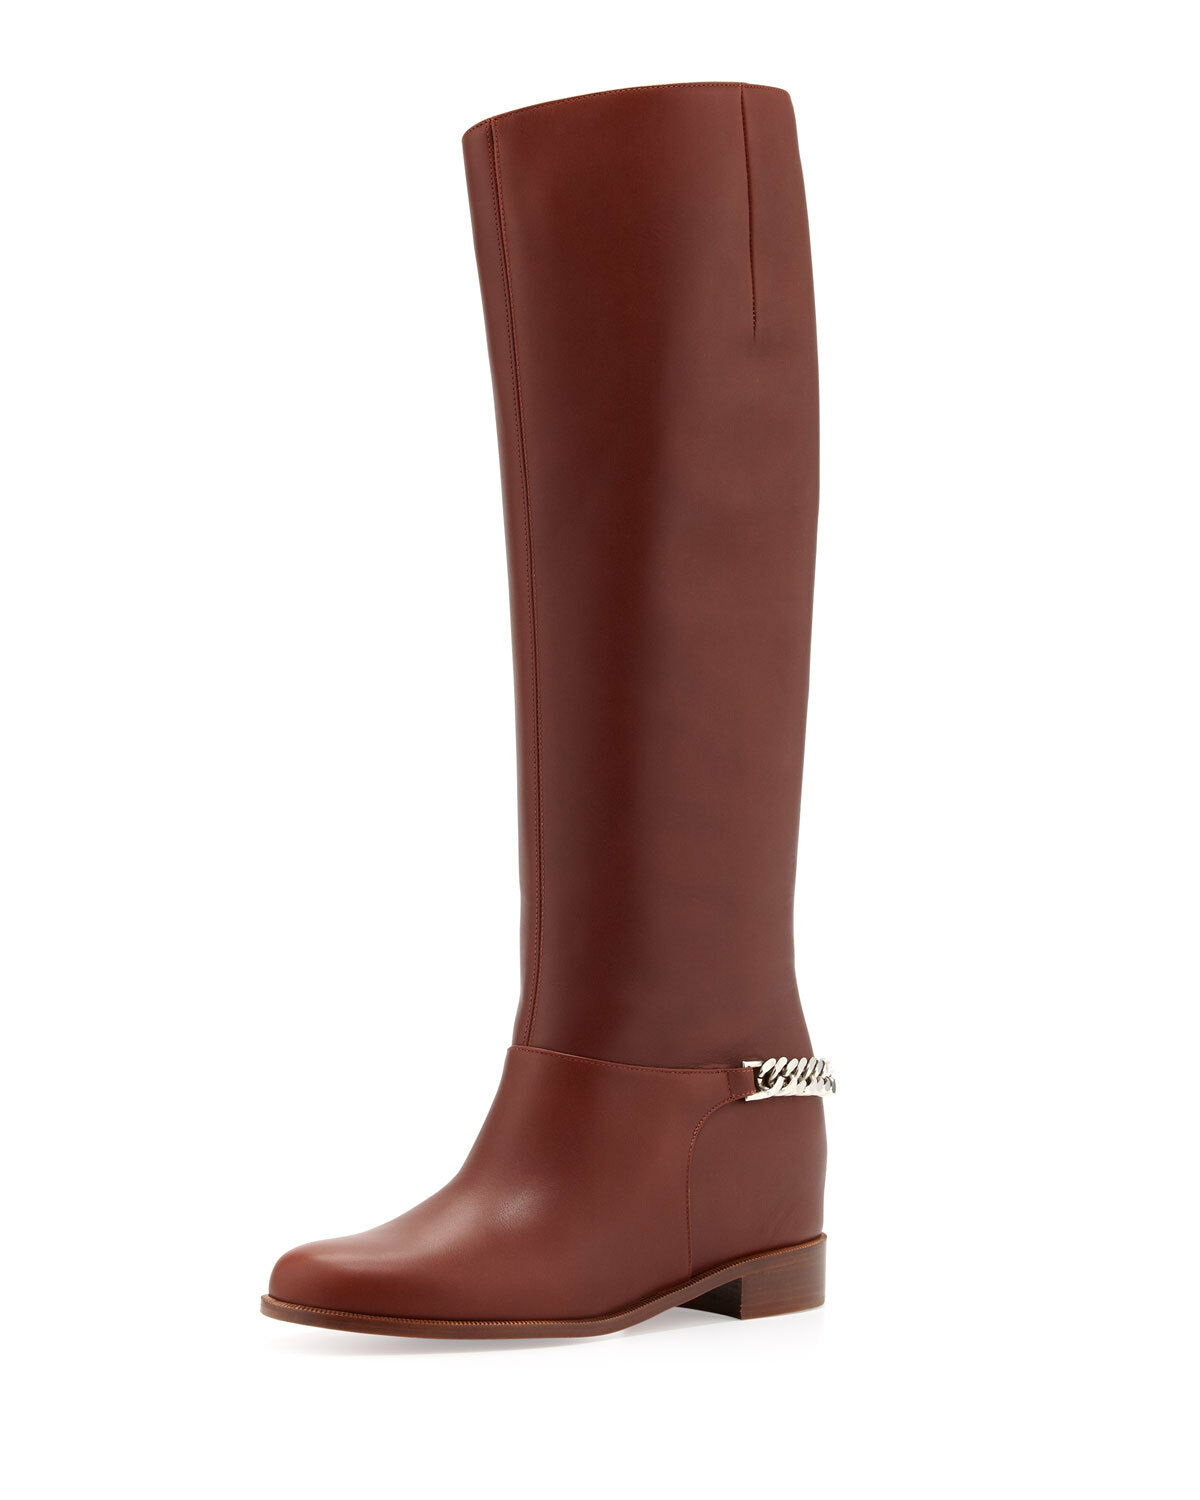 100% AUTH NEW WOMEN LOUBOUTIN CATE FLAT CHAIN BOOT BROWN KNEE BOOTS US 7